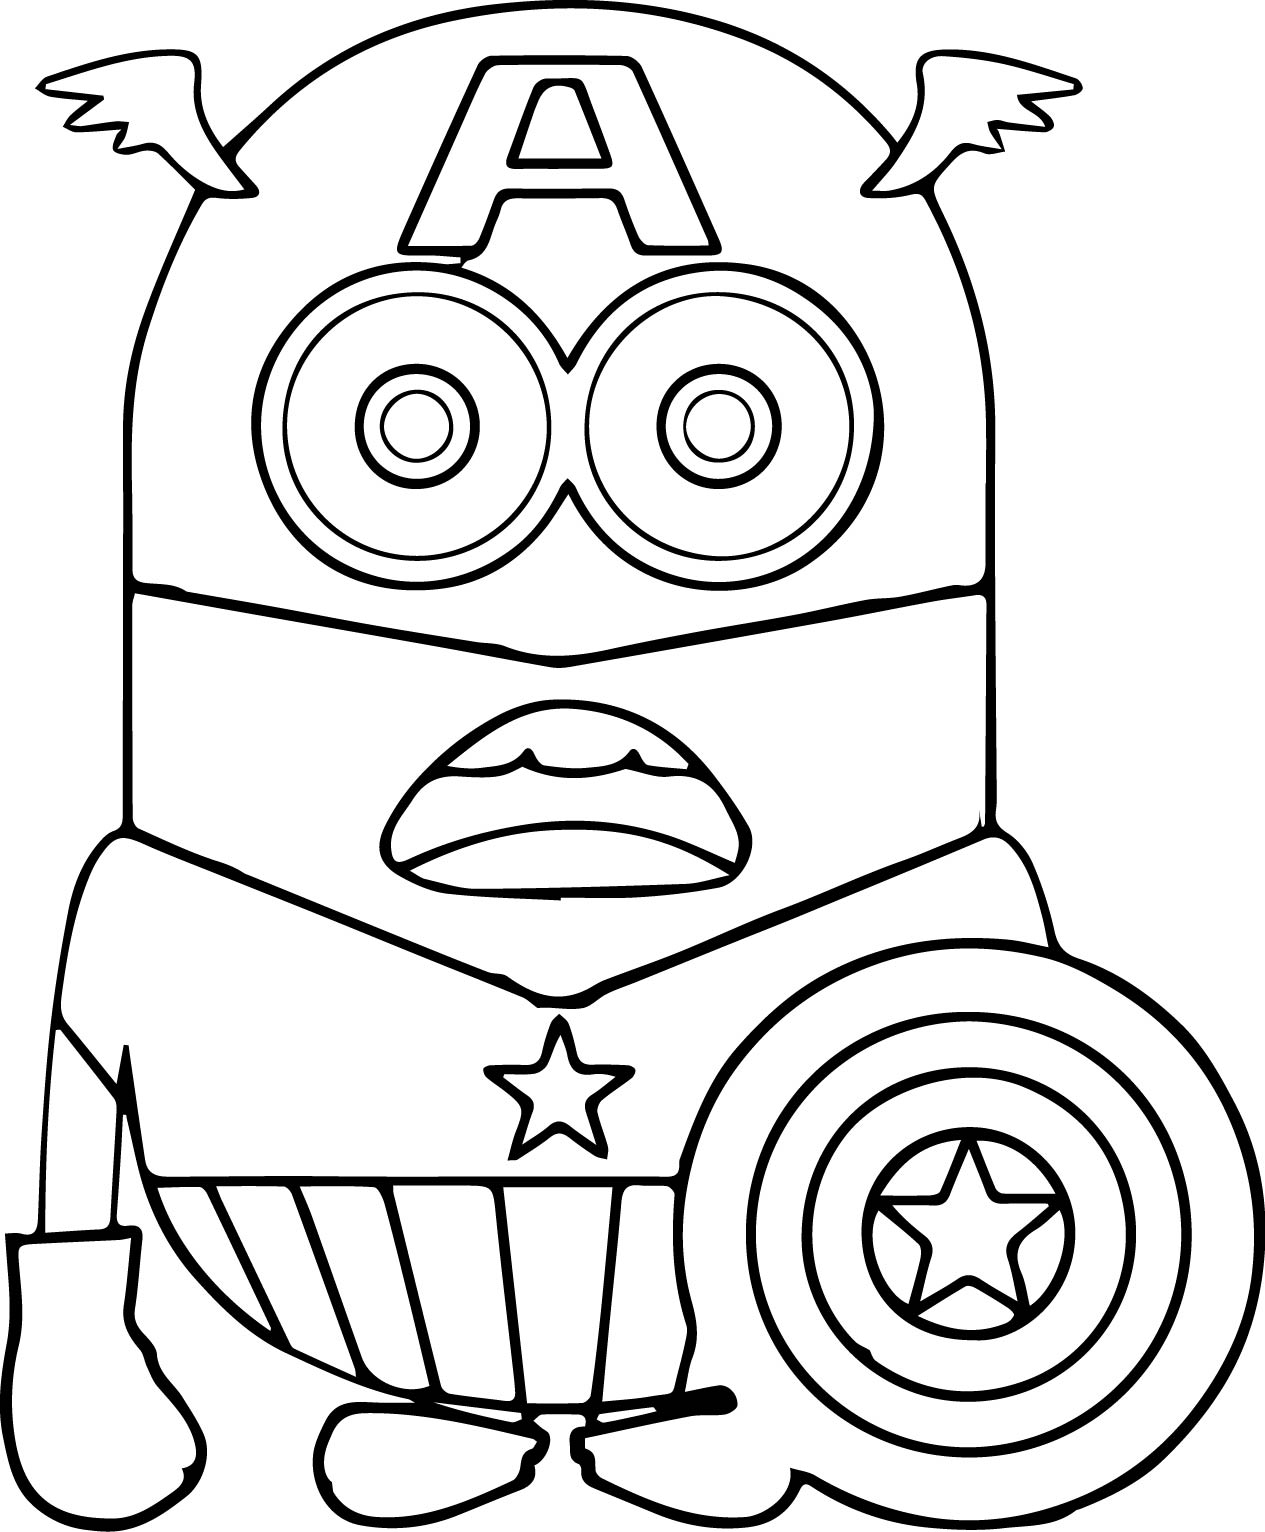 Iron Man 2 Coloring Pages Simple Ausmalbild Iron Man Voll Bepackt